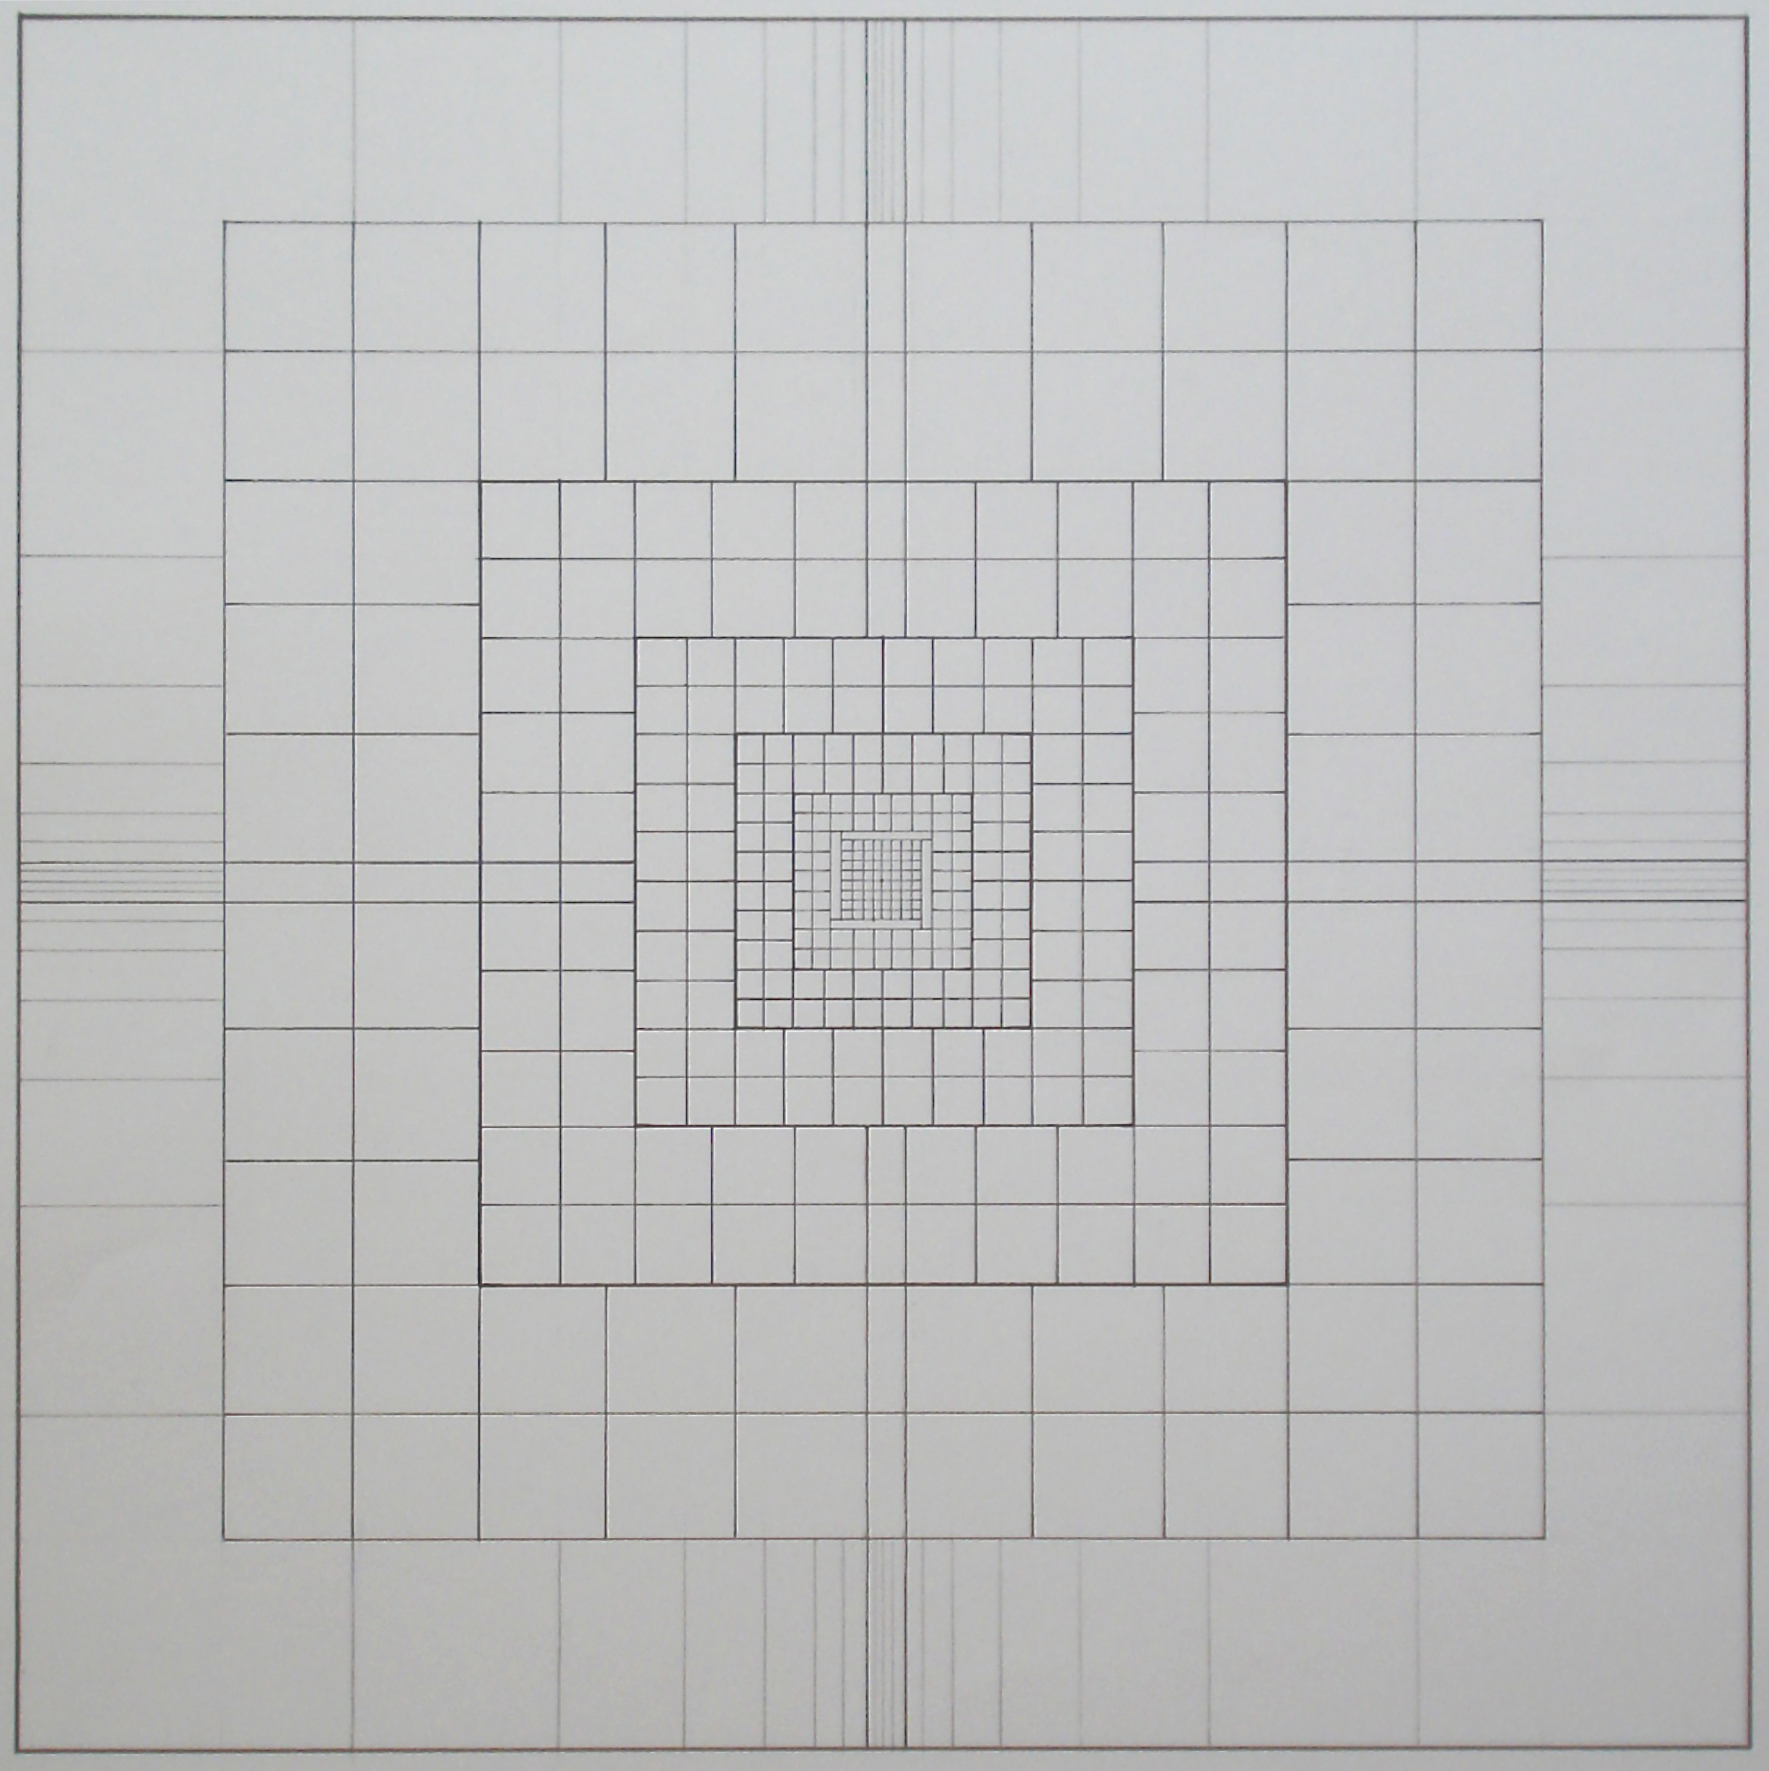 Yantra-ipsum-creator-structure, 2013, graphite, ink, on paper 17 3/4 x 17 3/4 in. [45x45cm]